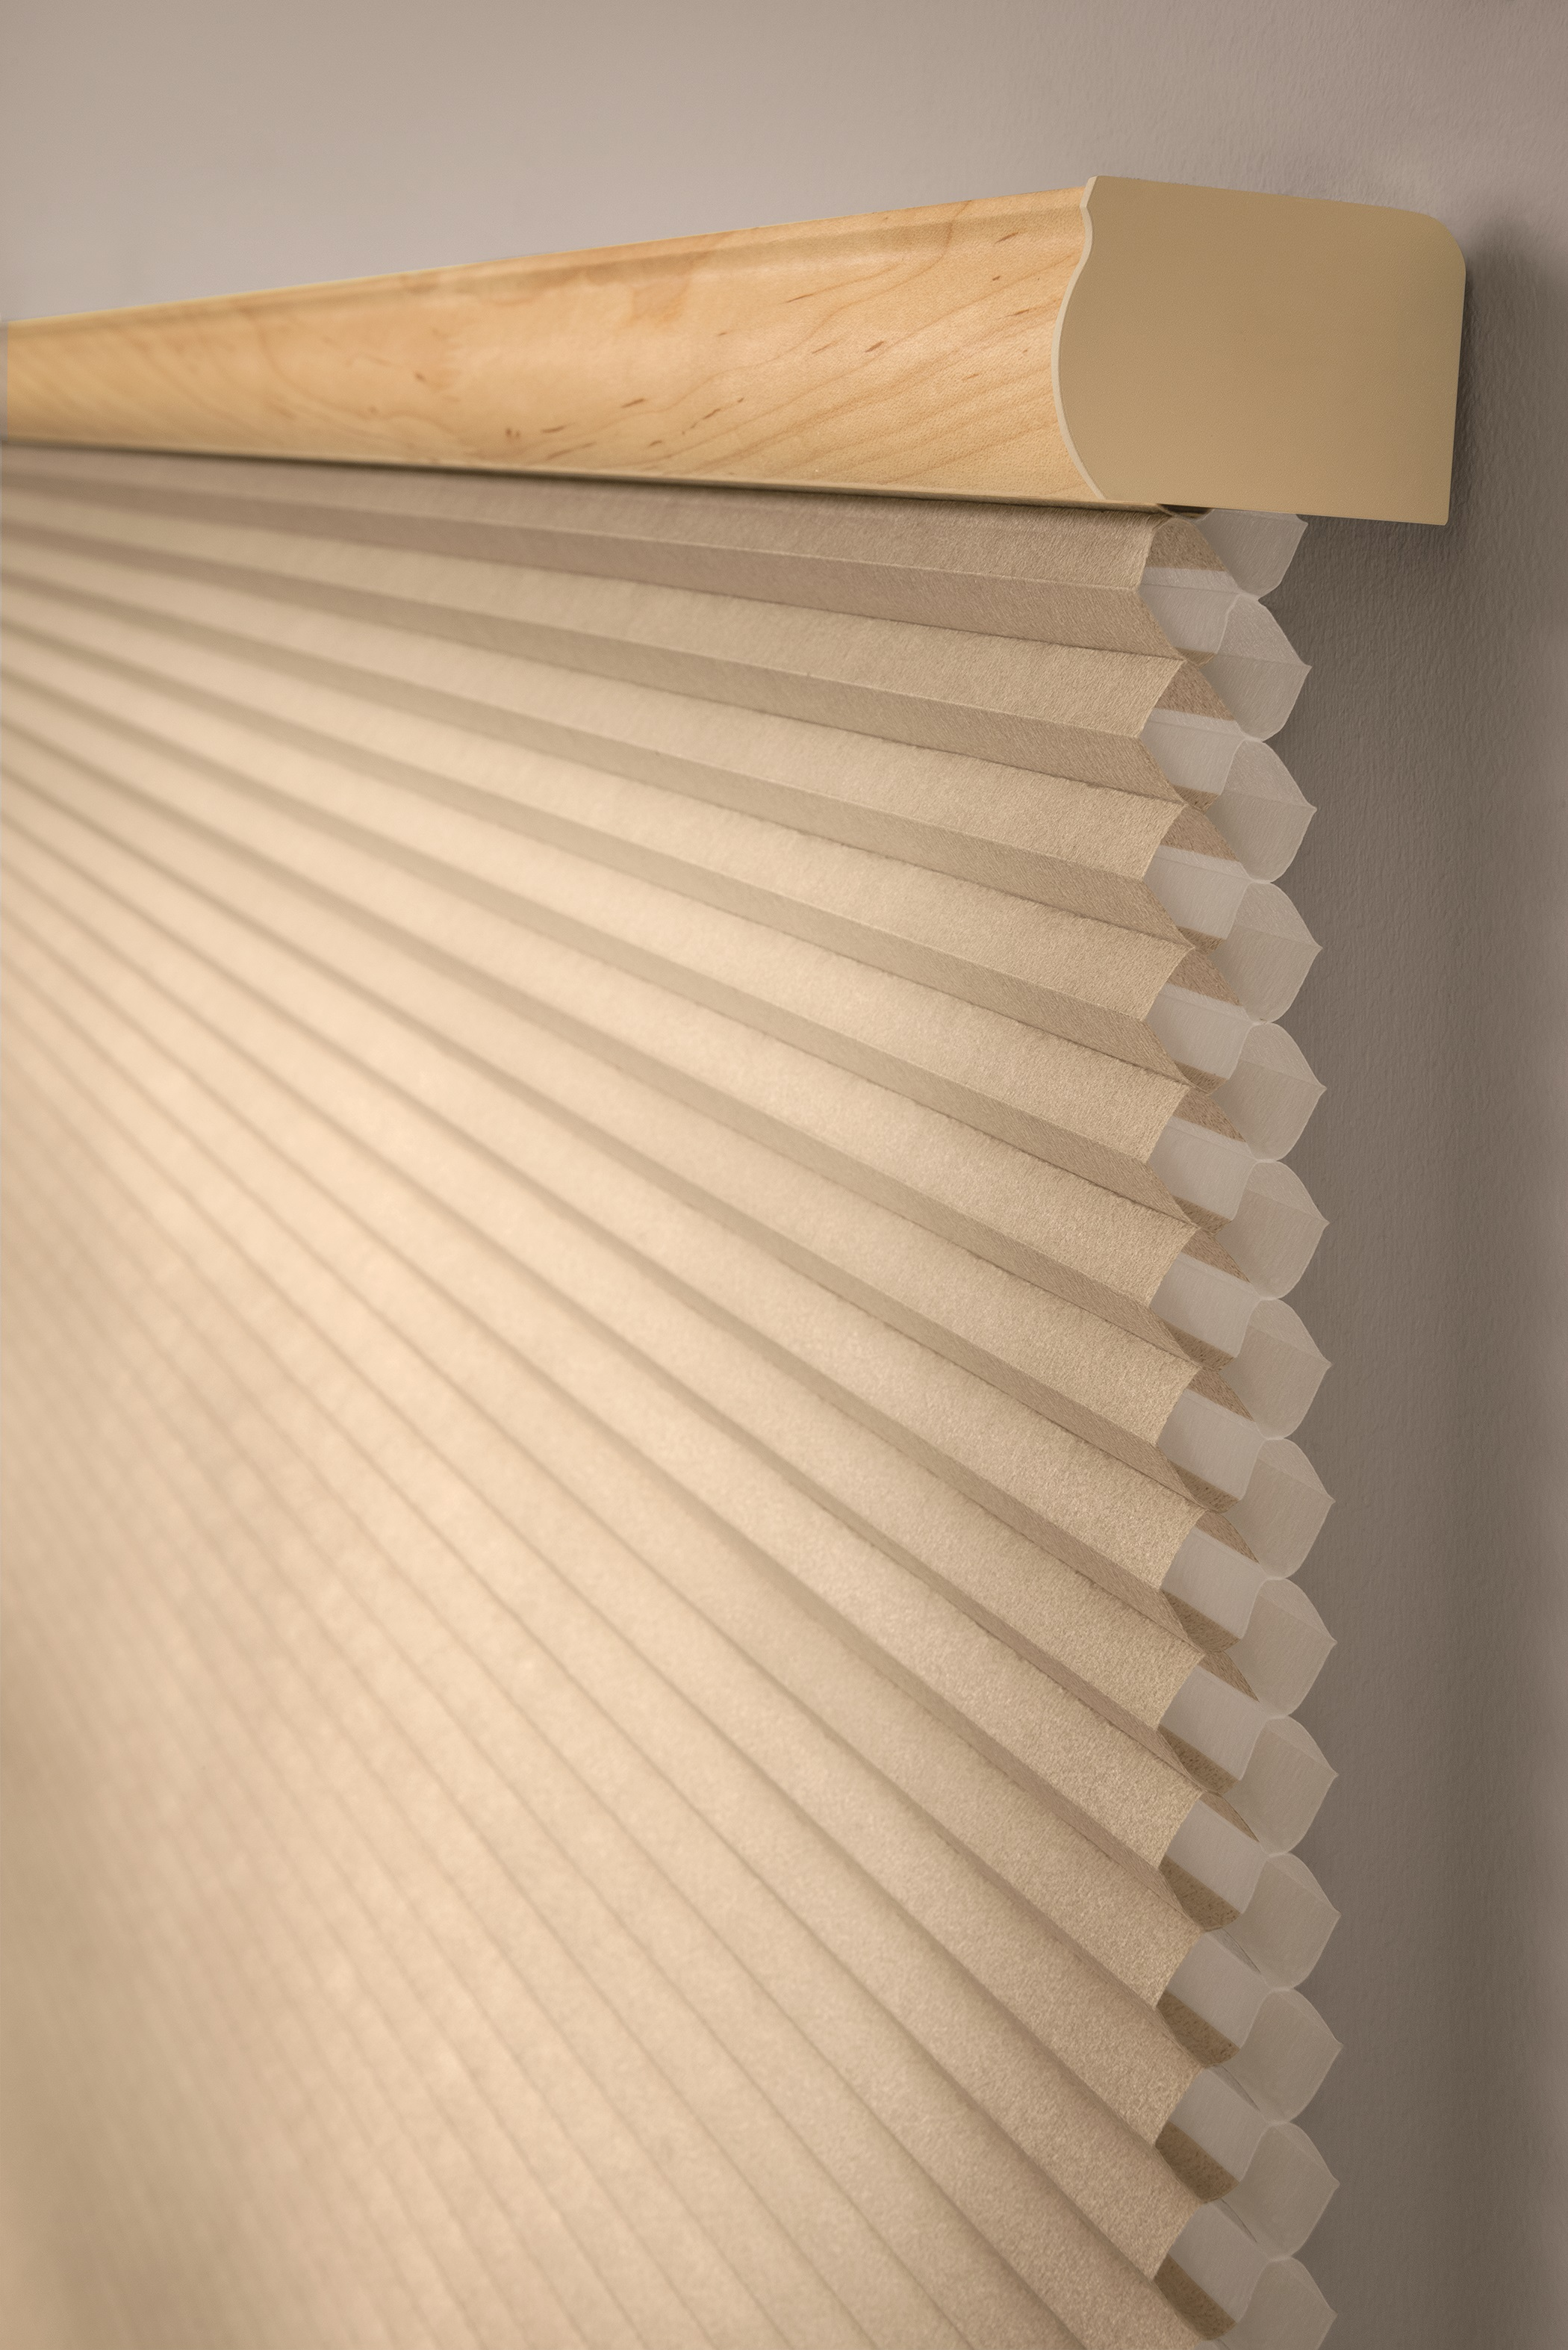 Cellular Shades meld exquisite fabrics with a honeycomb structure to regulate a home's temperature and conserve energy year-round. They're fully customizable, with three cell sizes and four opacity levels in a thoughtfully considered collection of fabrics.